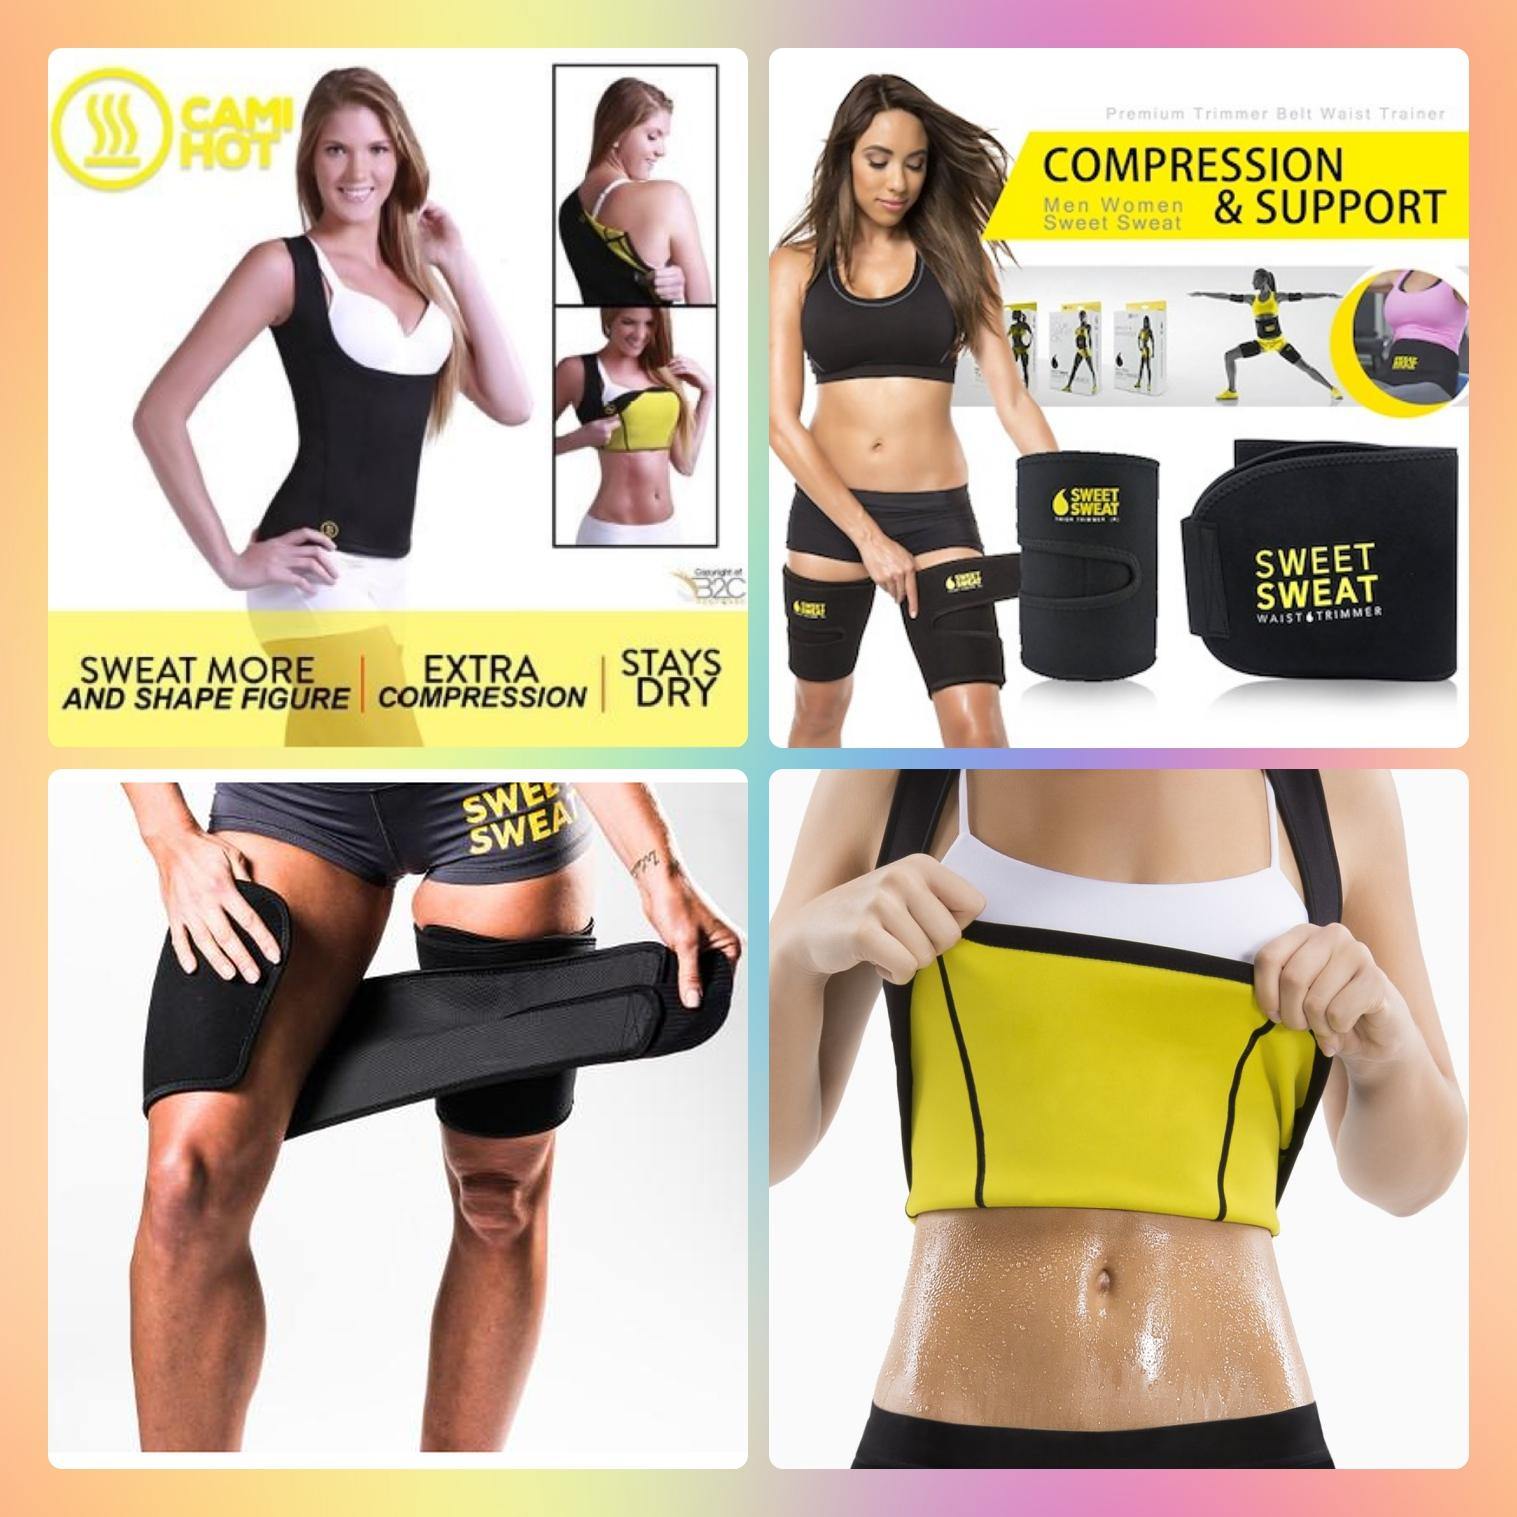 paket cami hot shaper neotex korset pengecil paha hot shapers – korset paha hot shaper neotex – setelan olahraga hot shaper neotex – setelan senam hot shapers – baju olah raga hot shapers – baju senam hot shaper neotex